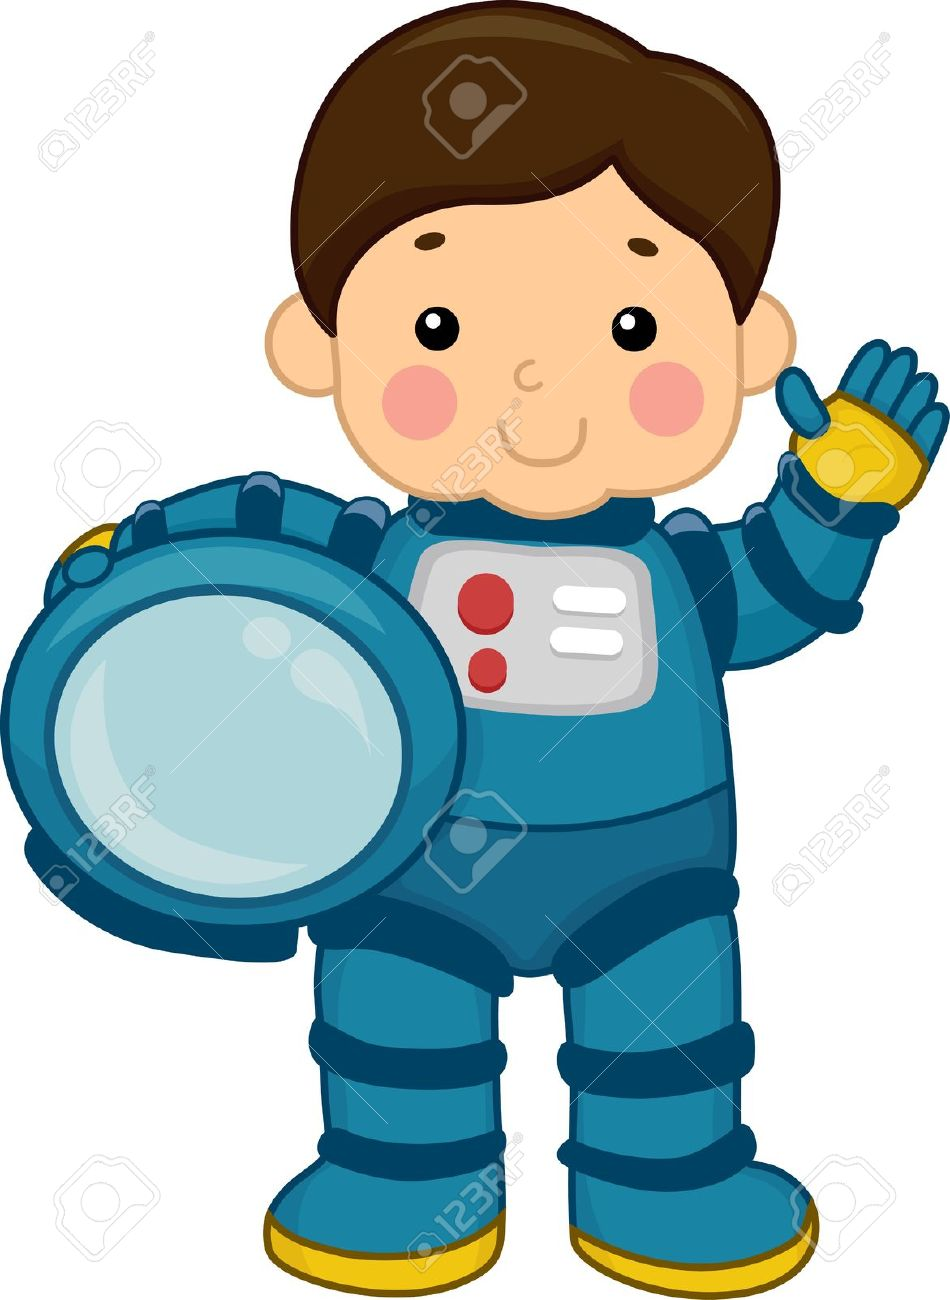 astronaut in space clipart - photo #38